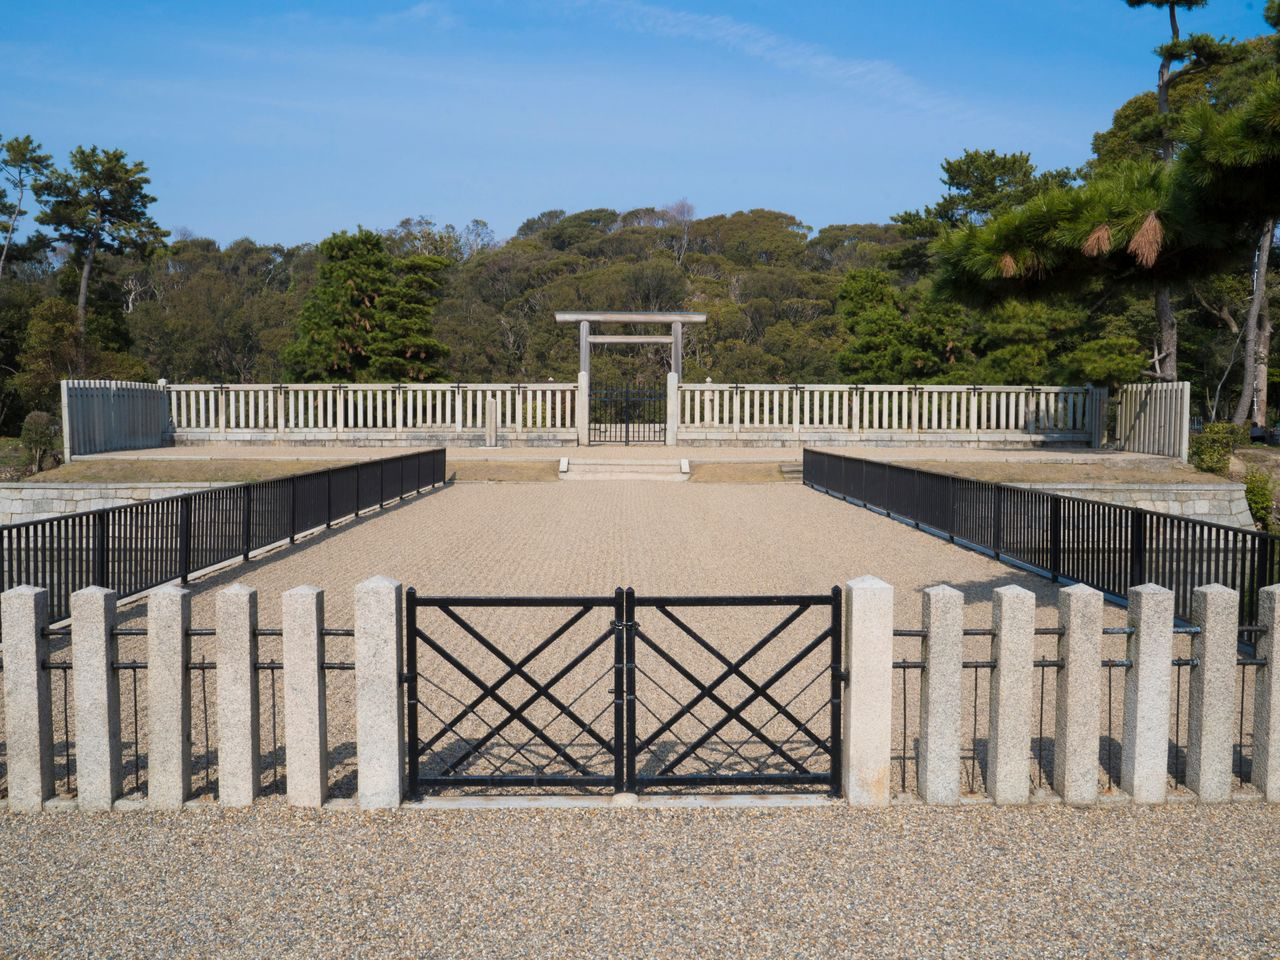 The Emperor Nintoku burial mound prayer space is the only spot where you can directly view the circular, aft part of the keyhole-shaped tumulus.